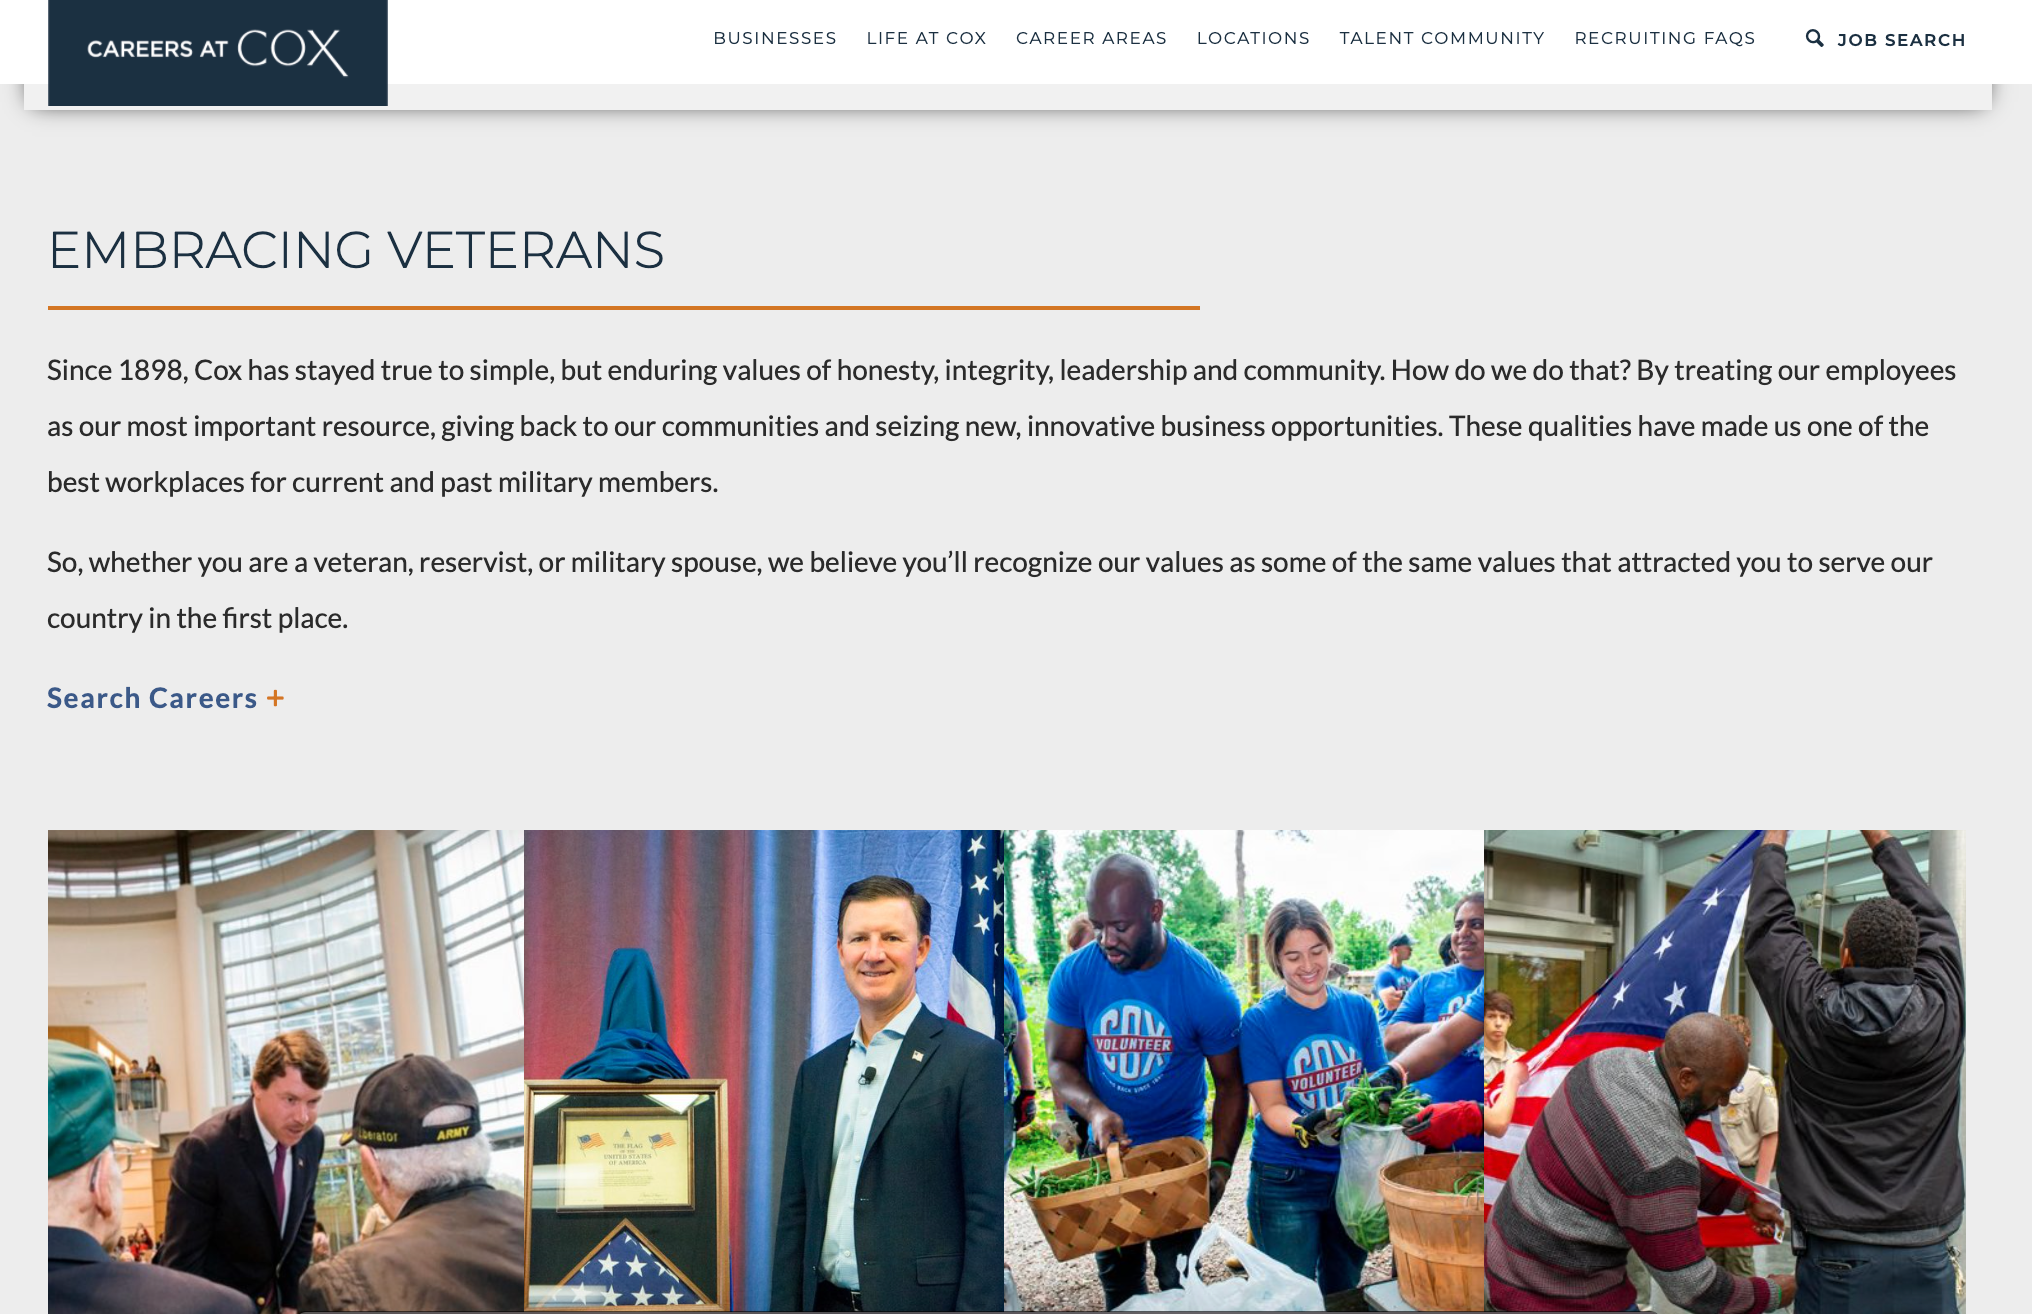 Veteran's Day webpage from Cox